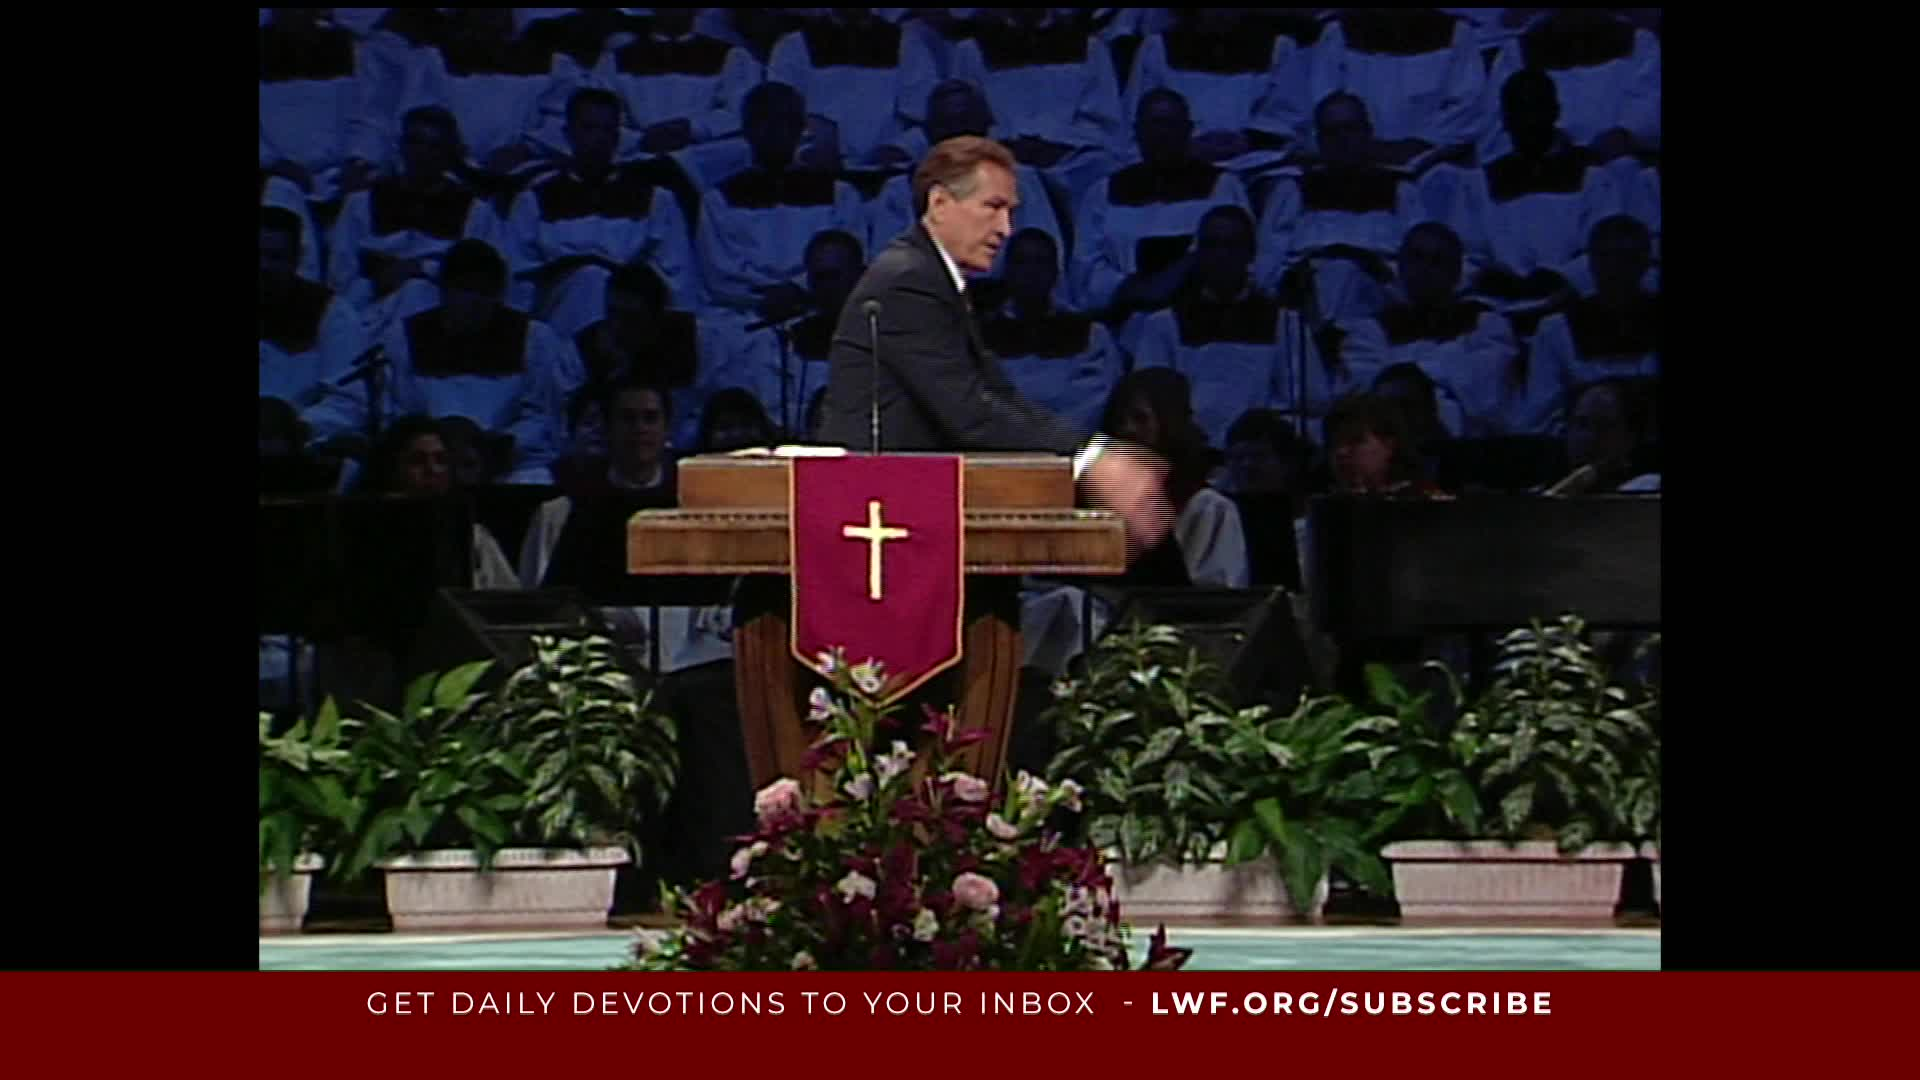 Adrian Rogers - How To Have Steadfast Hope In A Shaky World